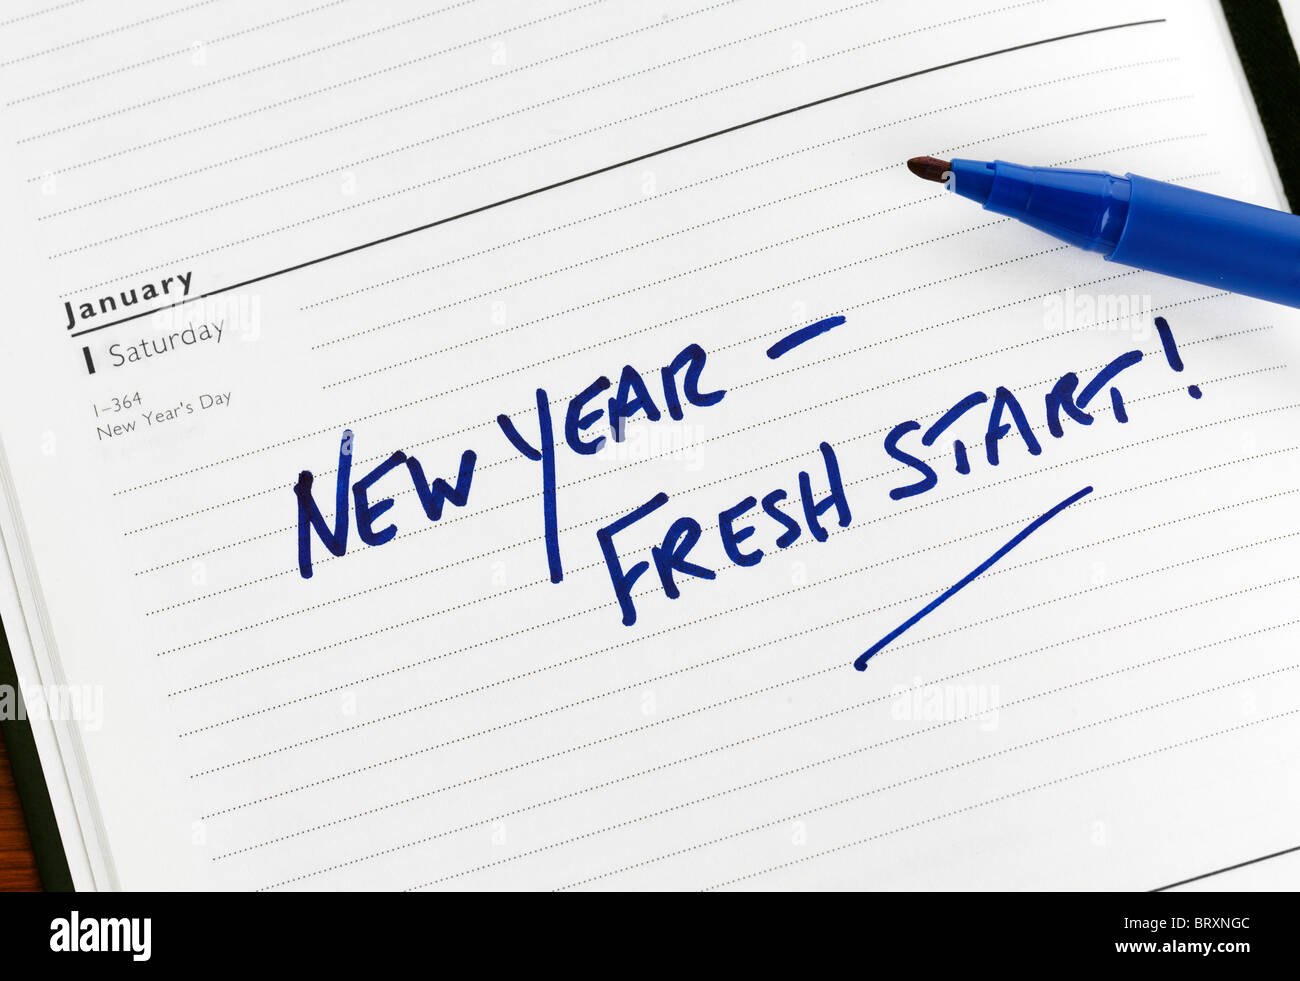 New Year resolution marked in a diary for 01 January - Stock Image